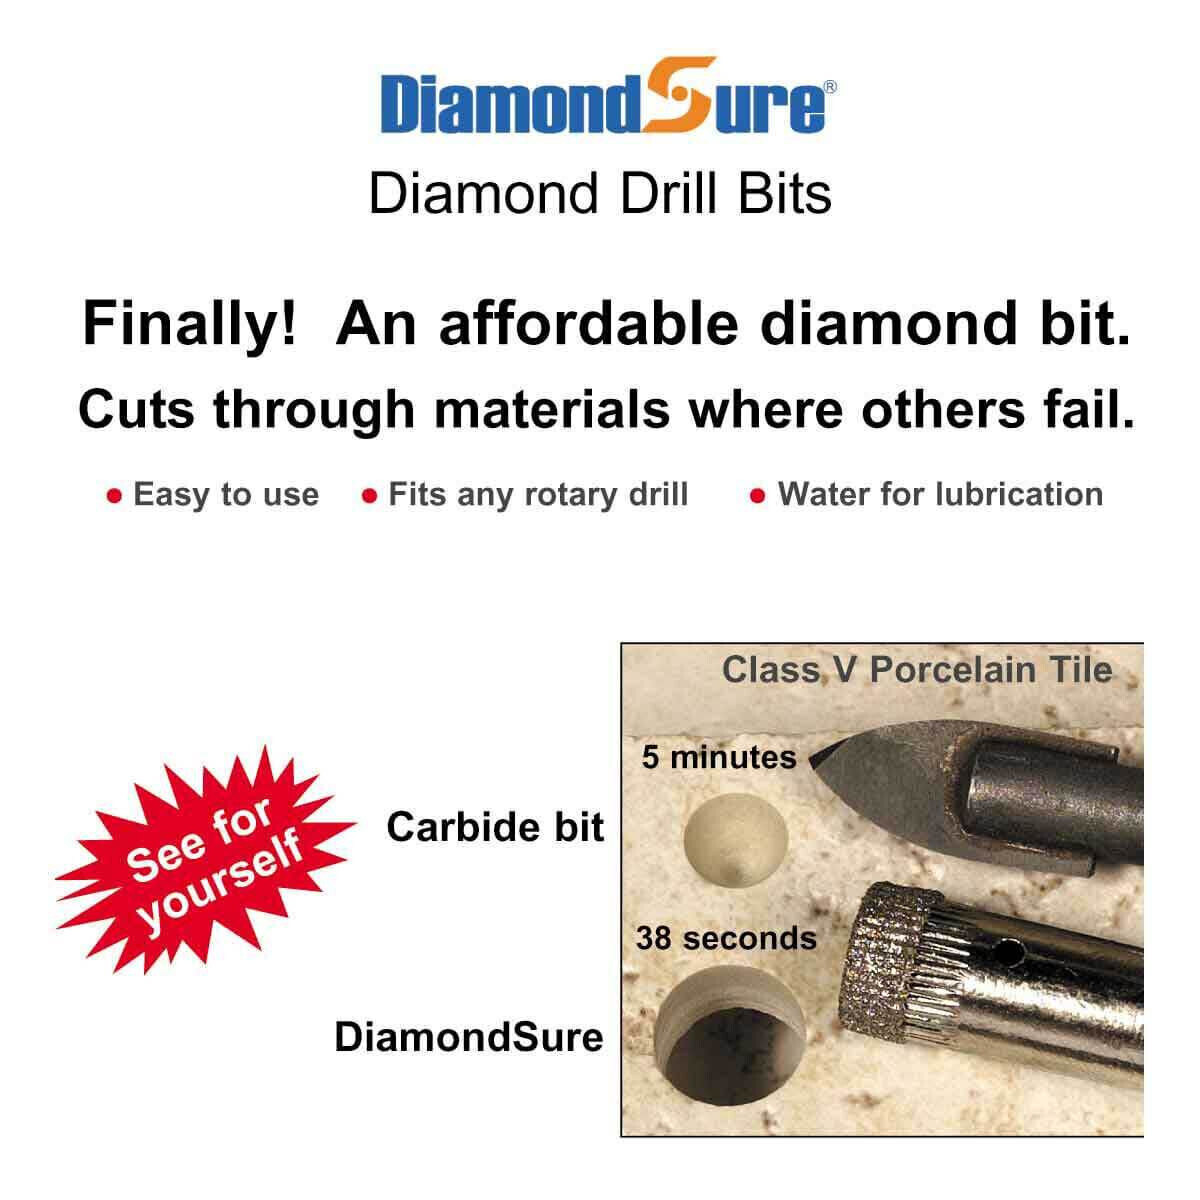 Diamond Sure Tile Drill Bit Demo